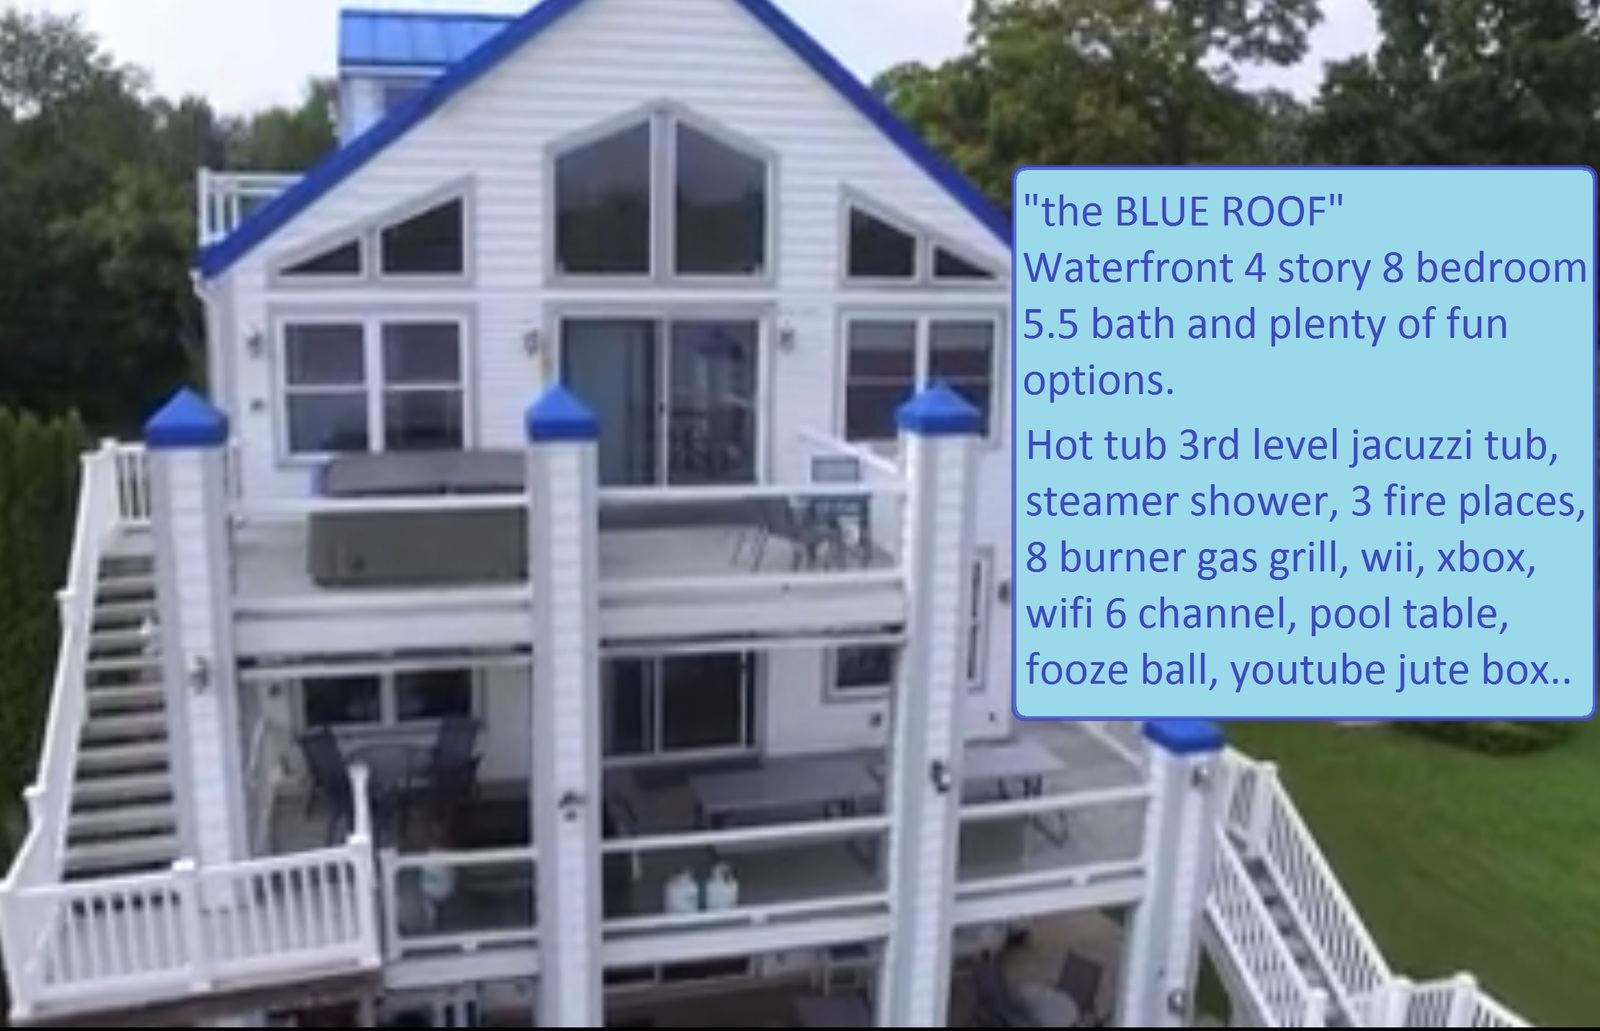 Vacation Rental You Desire For Your Family Vacation And